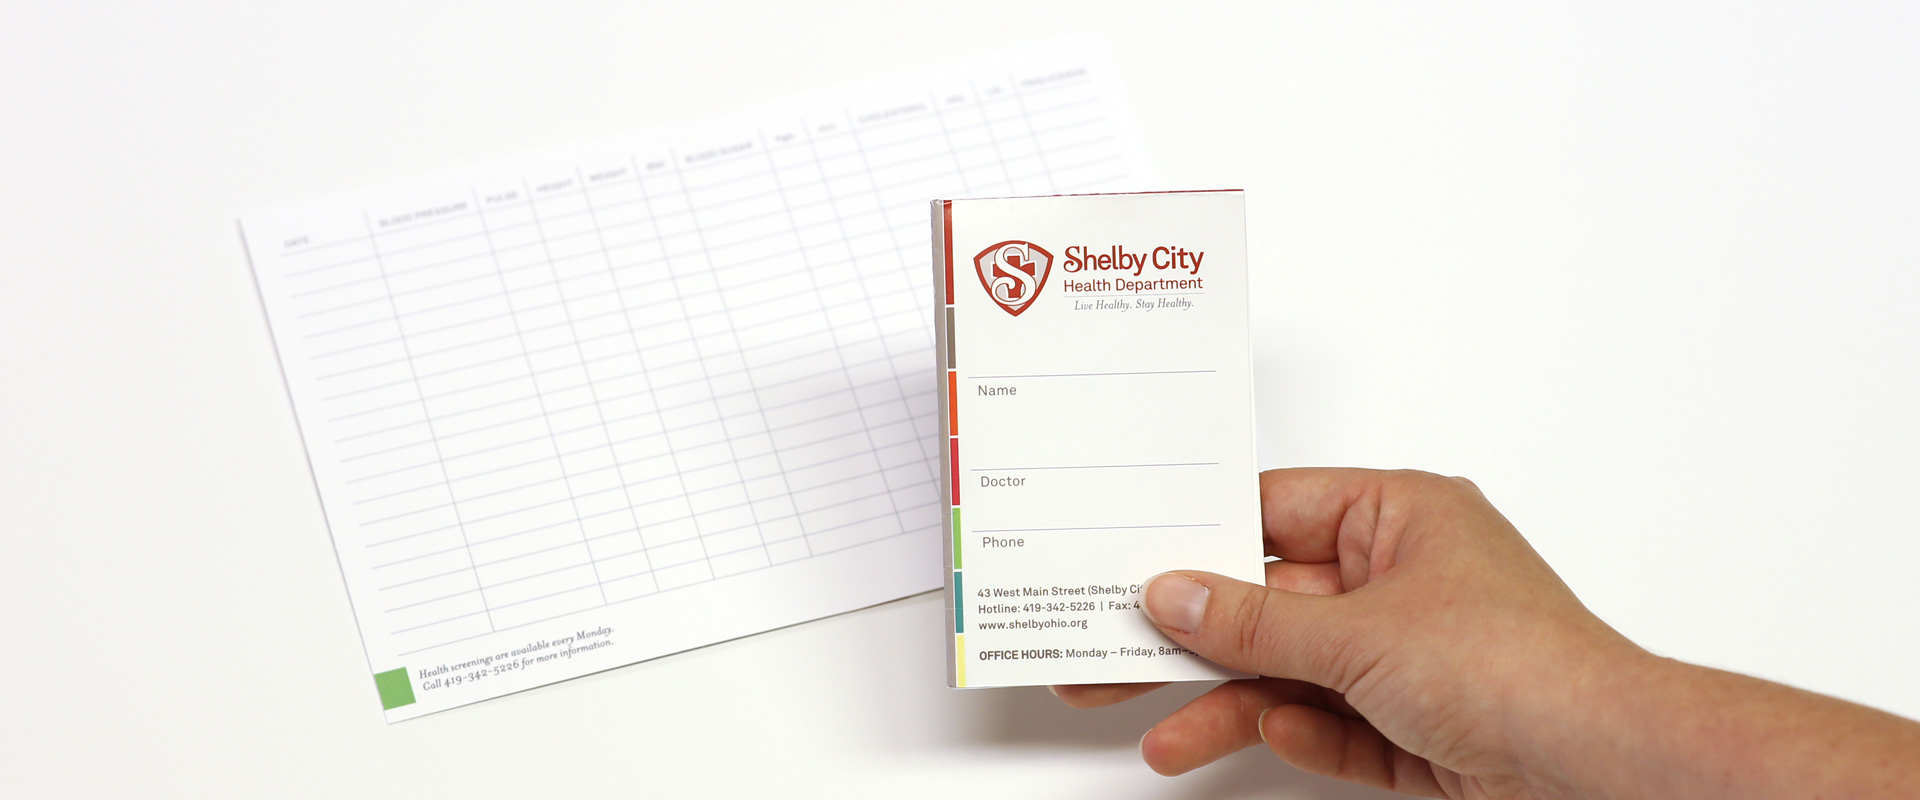 Shelby-City-Health-Department-Health-Card